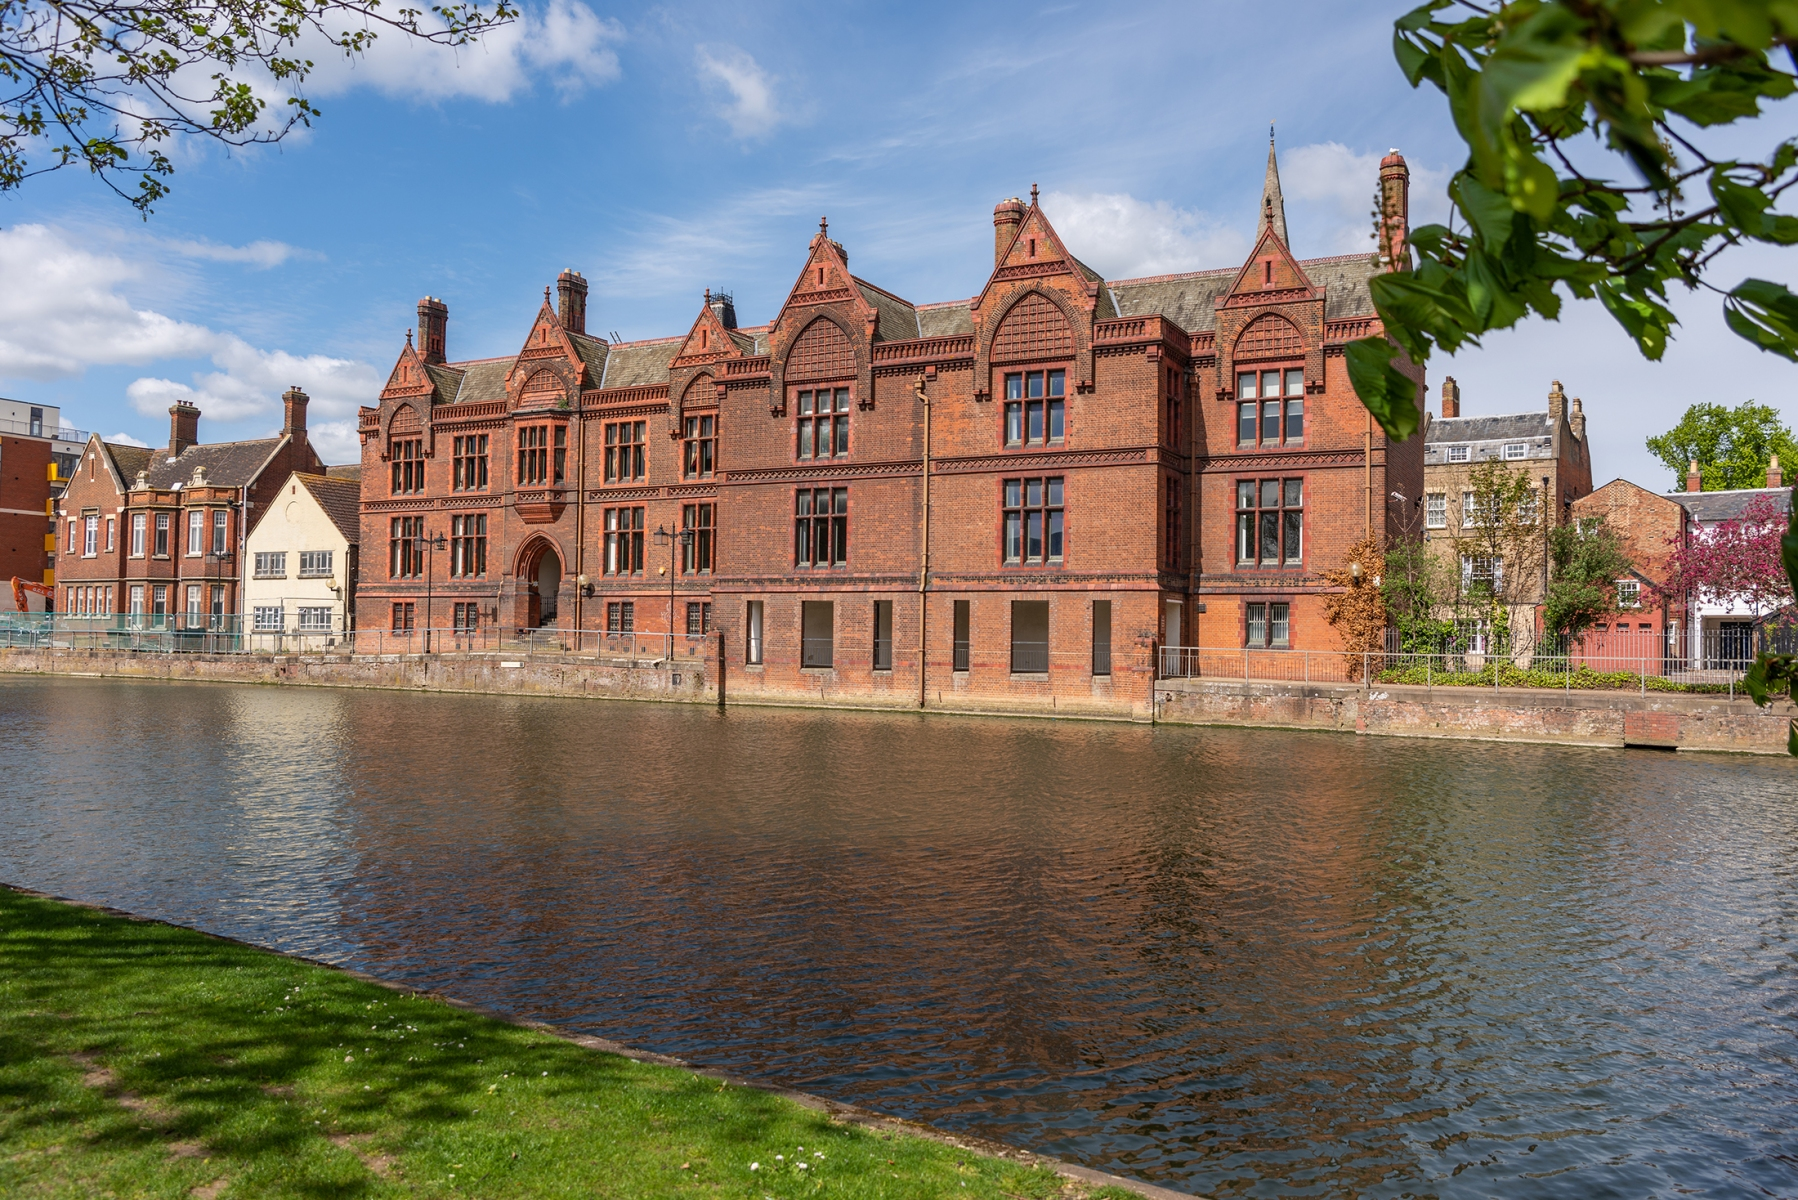 Bedford County Court viewed by the River Great Ouse